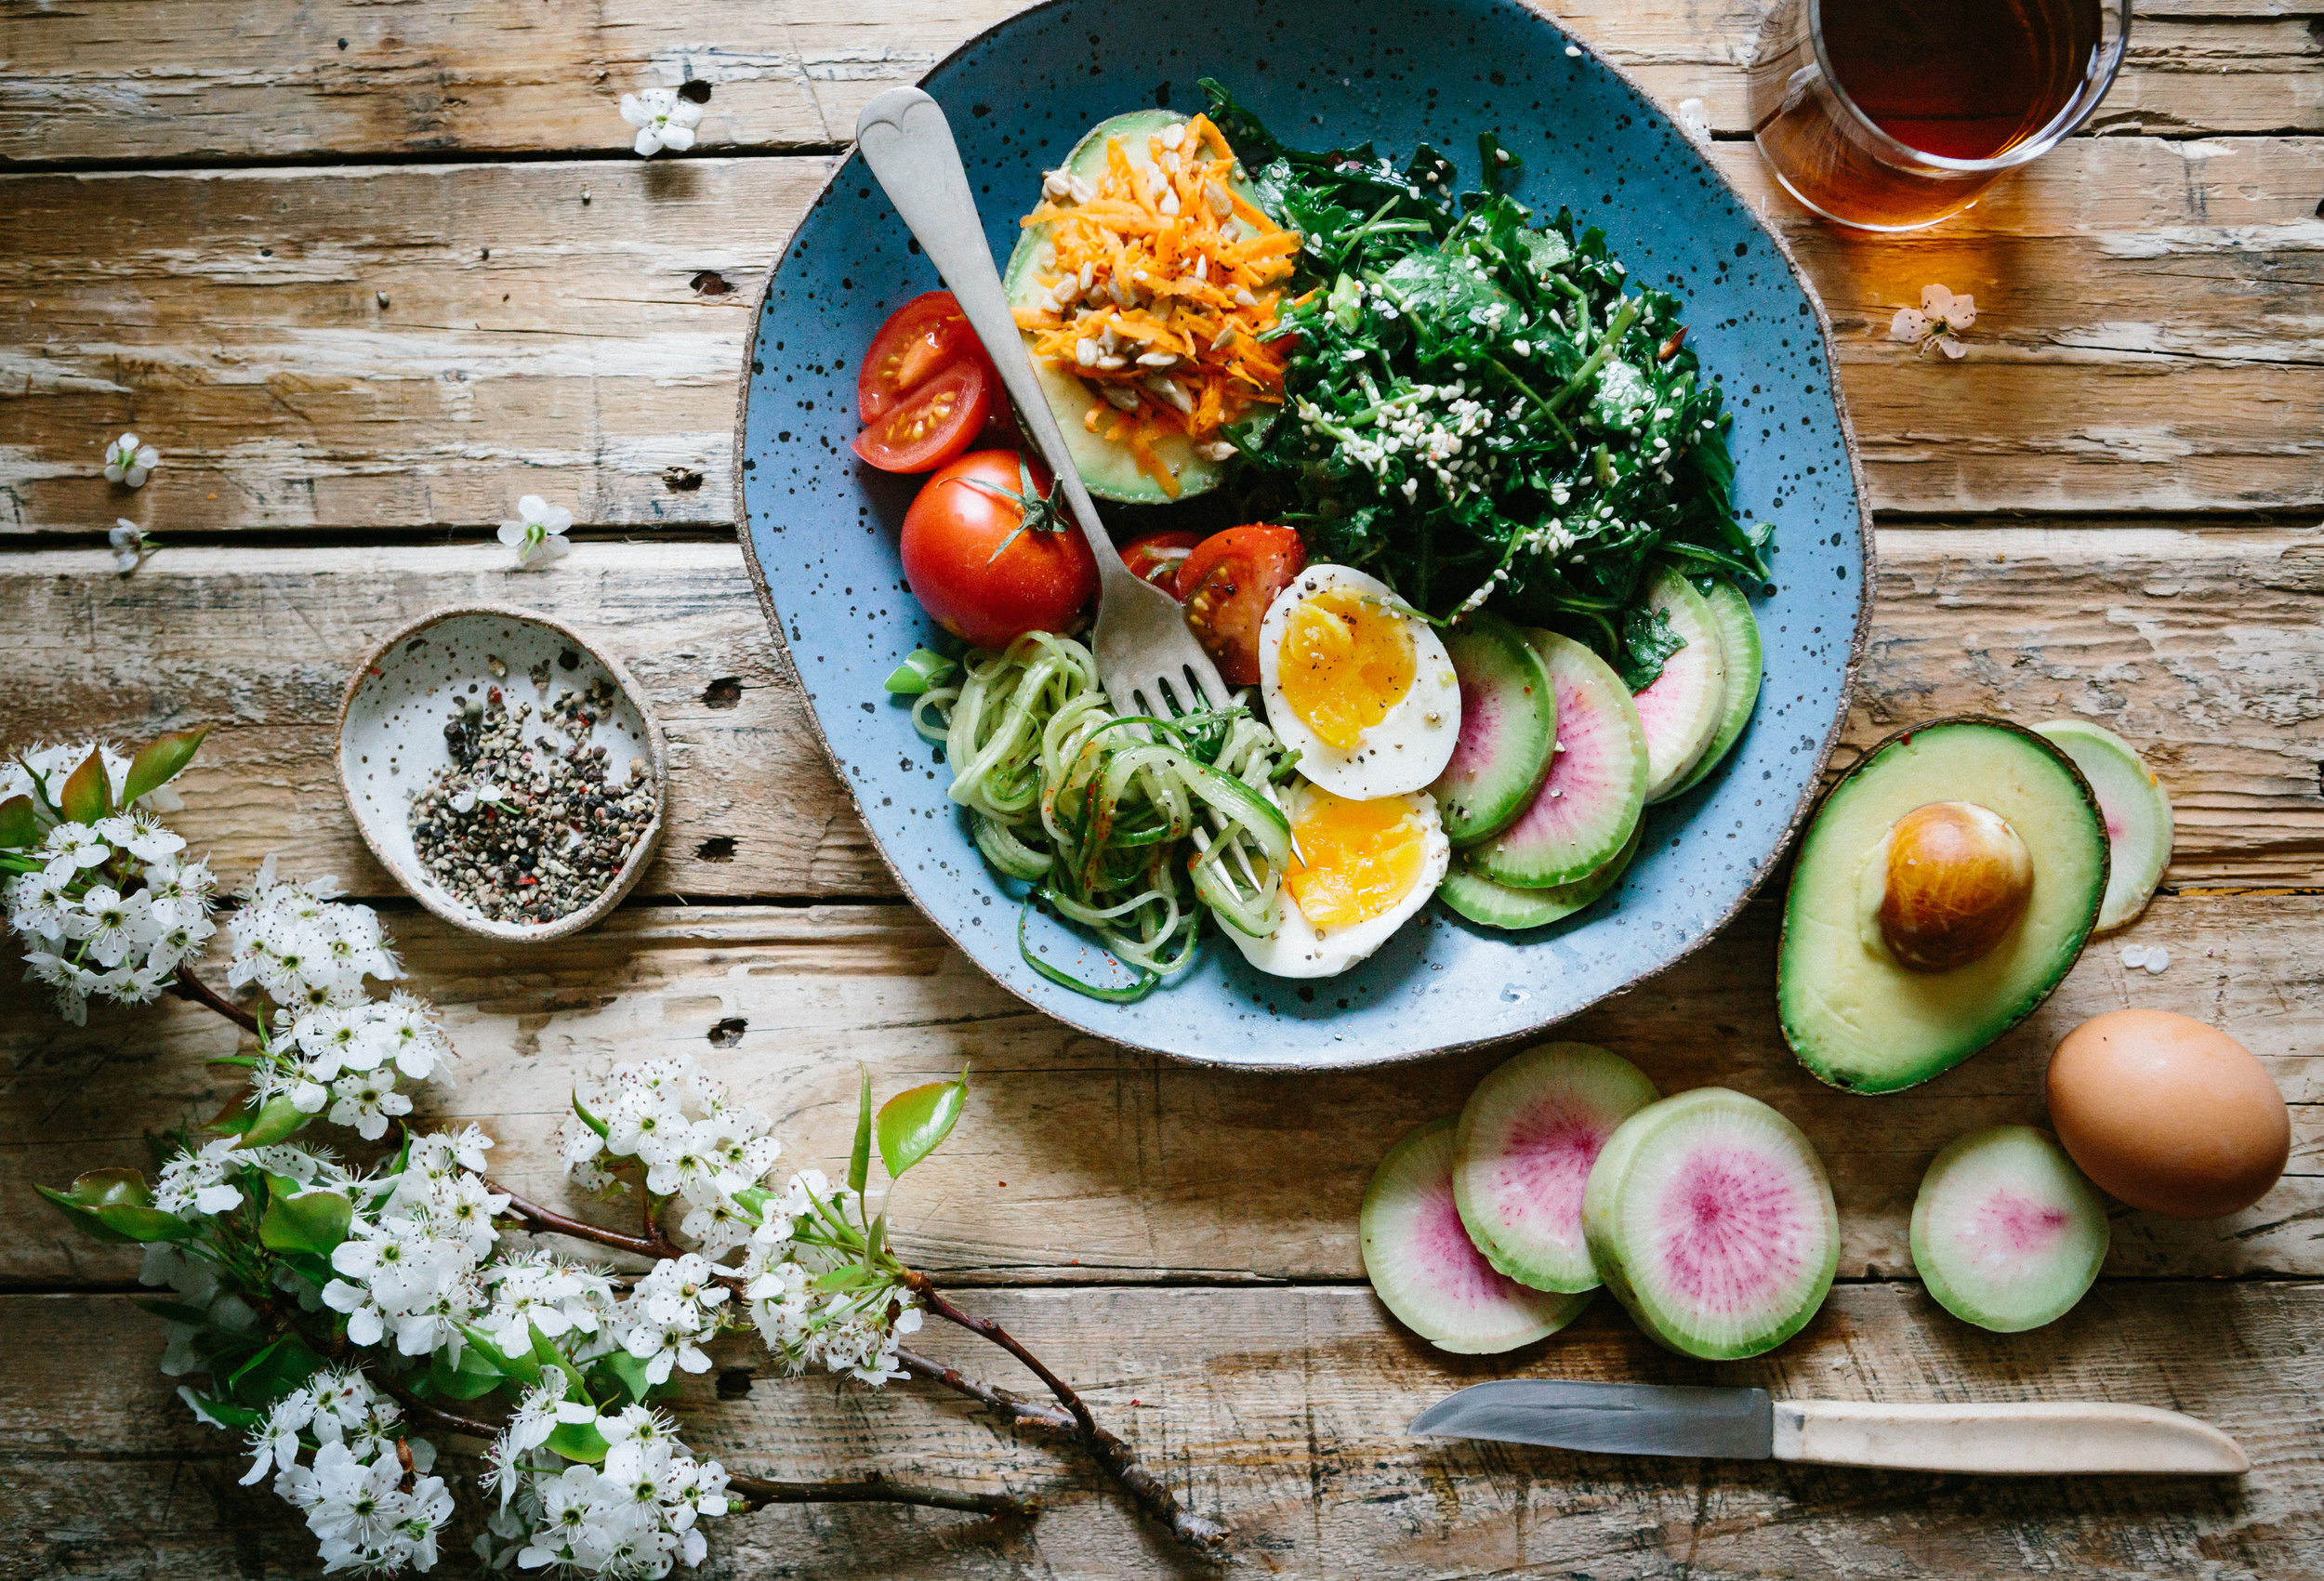 Health: Gut/Digestion - Through my own struggles with gut dysbiosis and various digestive disorders, I have learned that a happy gut is key to overall health and vitality.